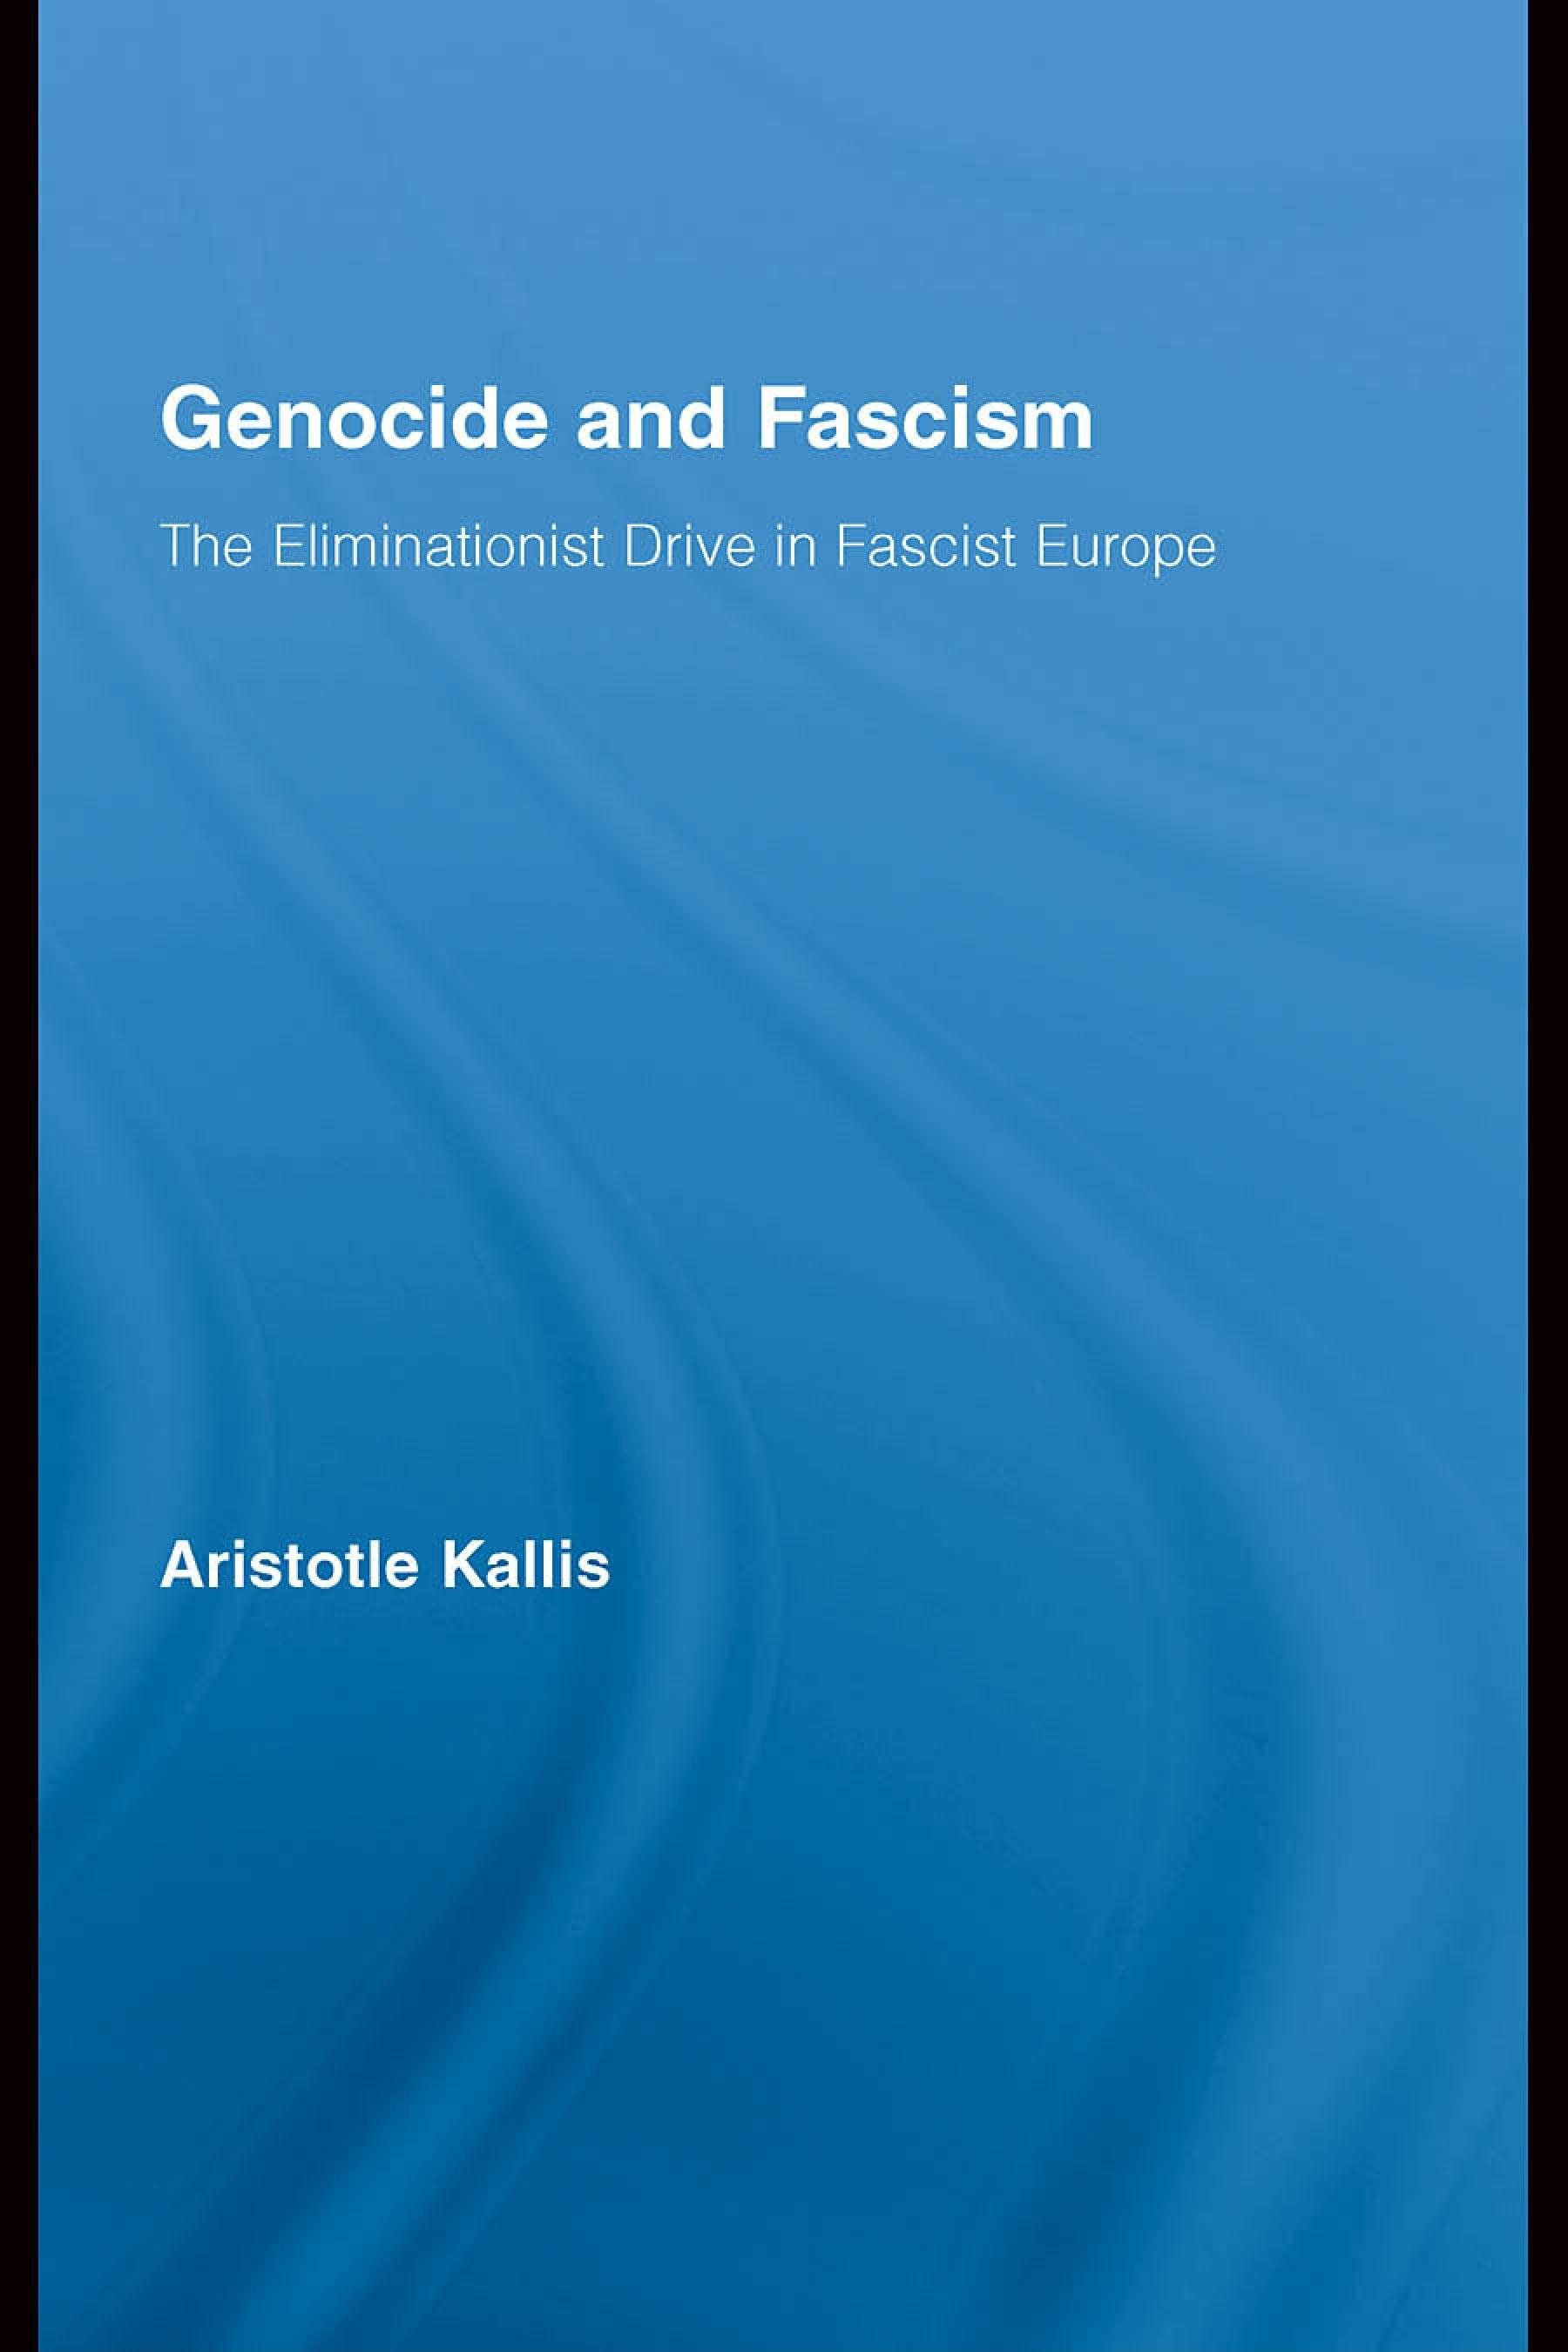 Genocide and Fascism: The Eliminationist Drive in Fascist Europe